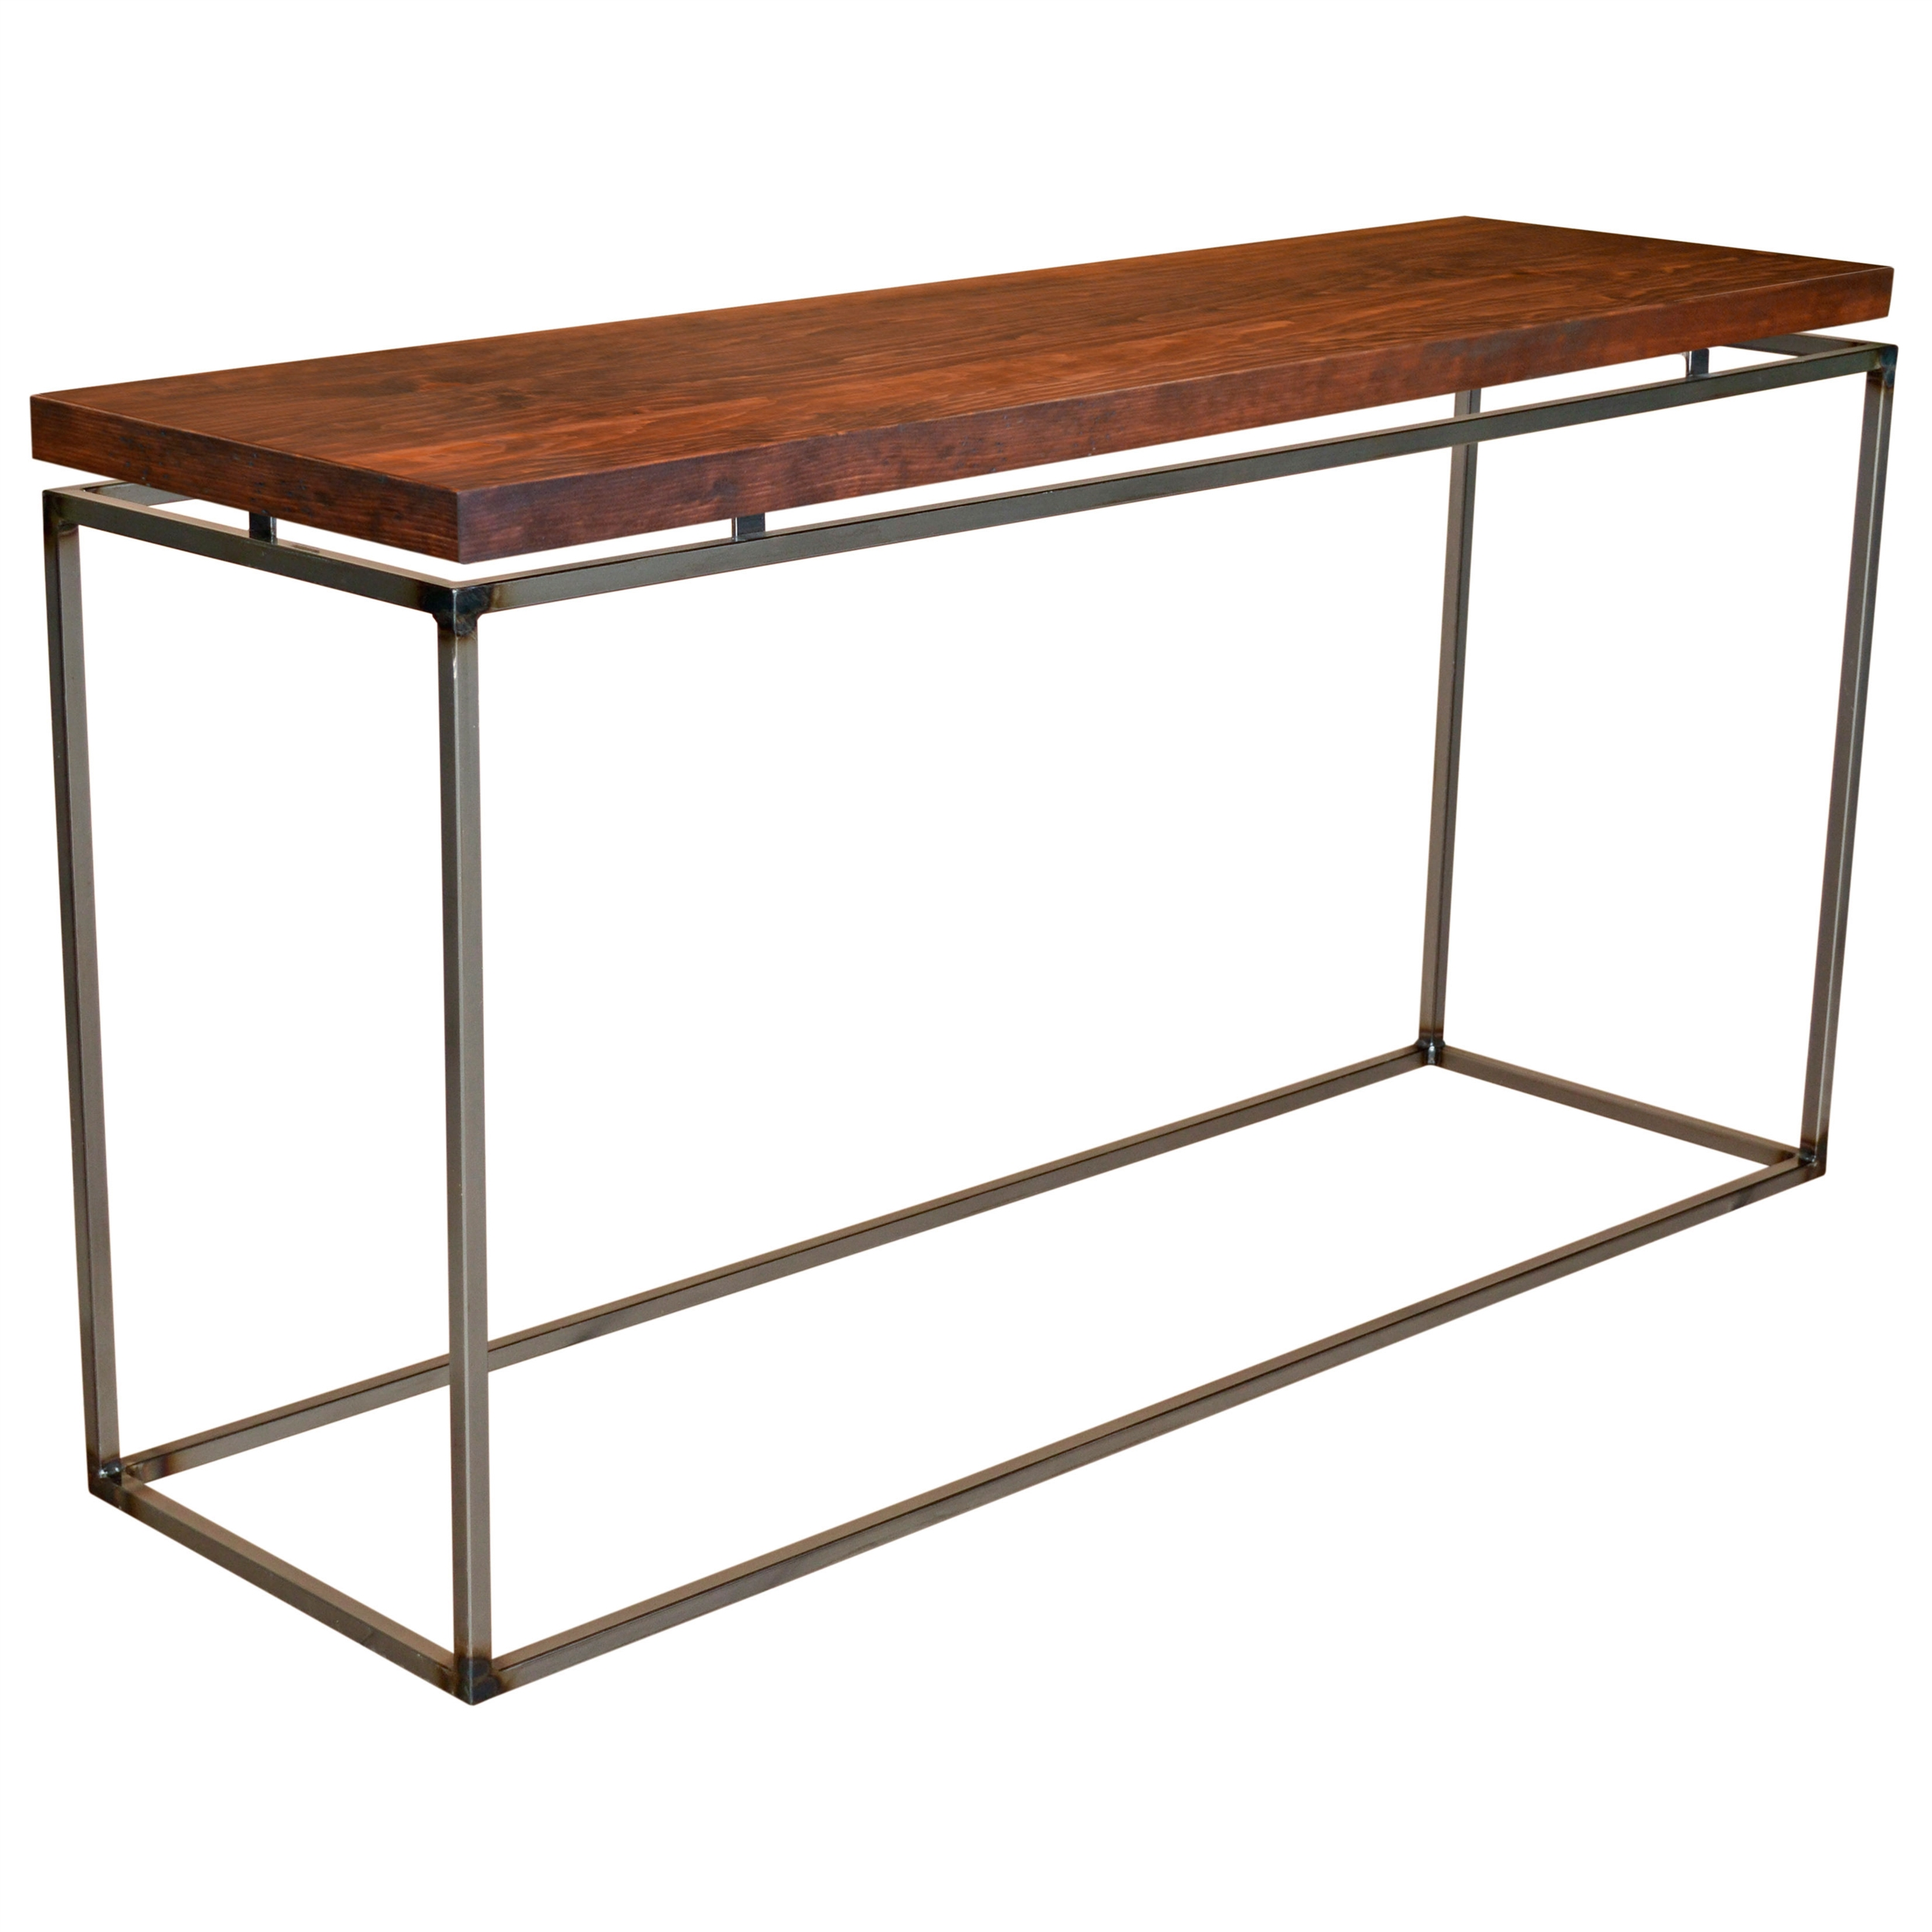 Picture of: American Country Console Table 60 X 18 X 32